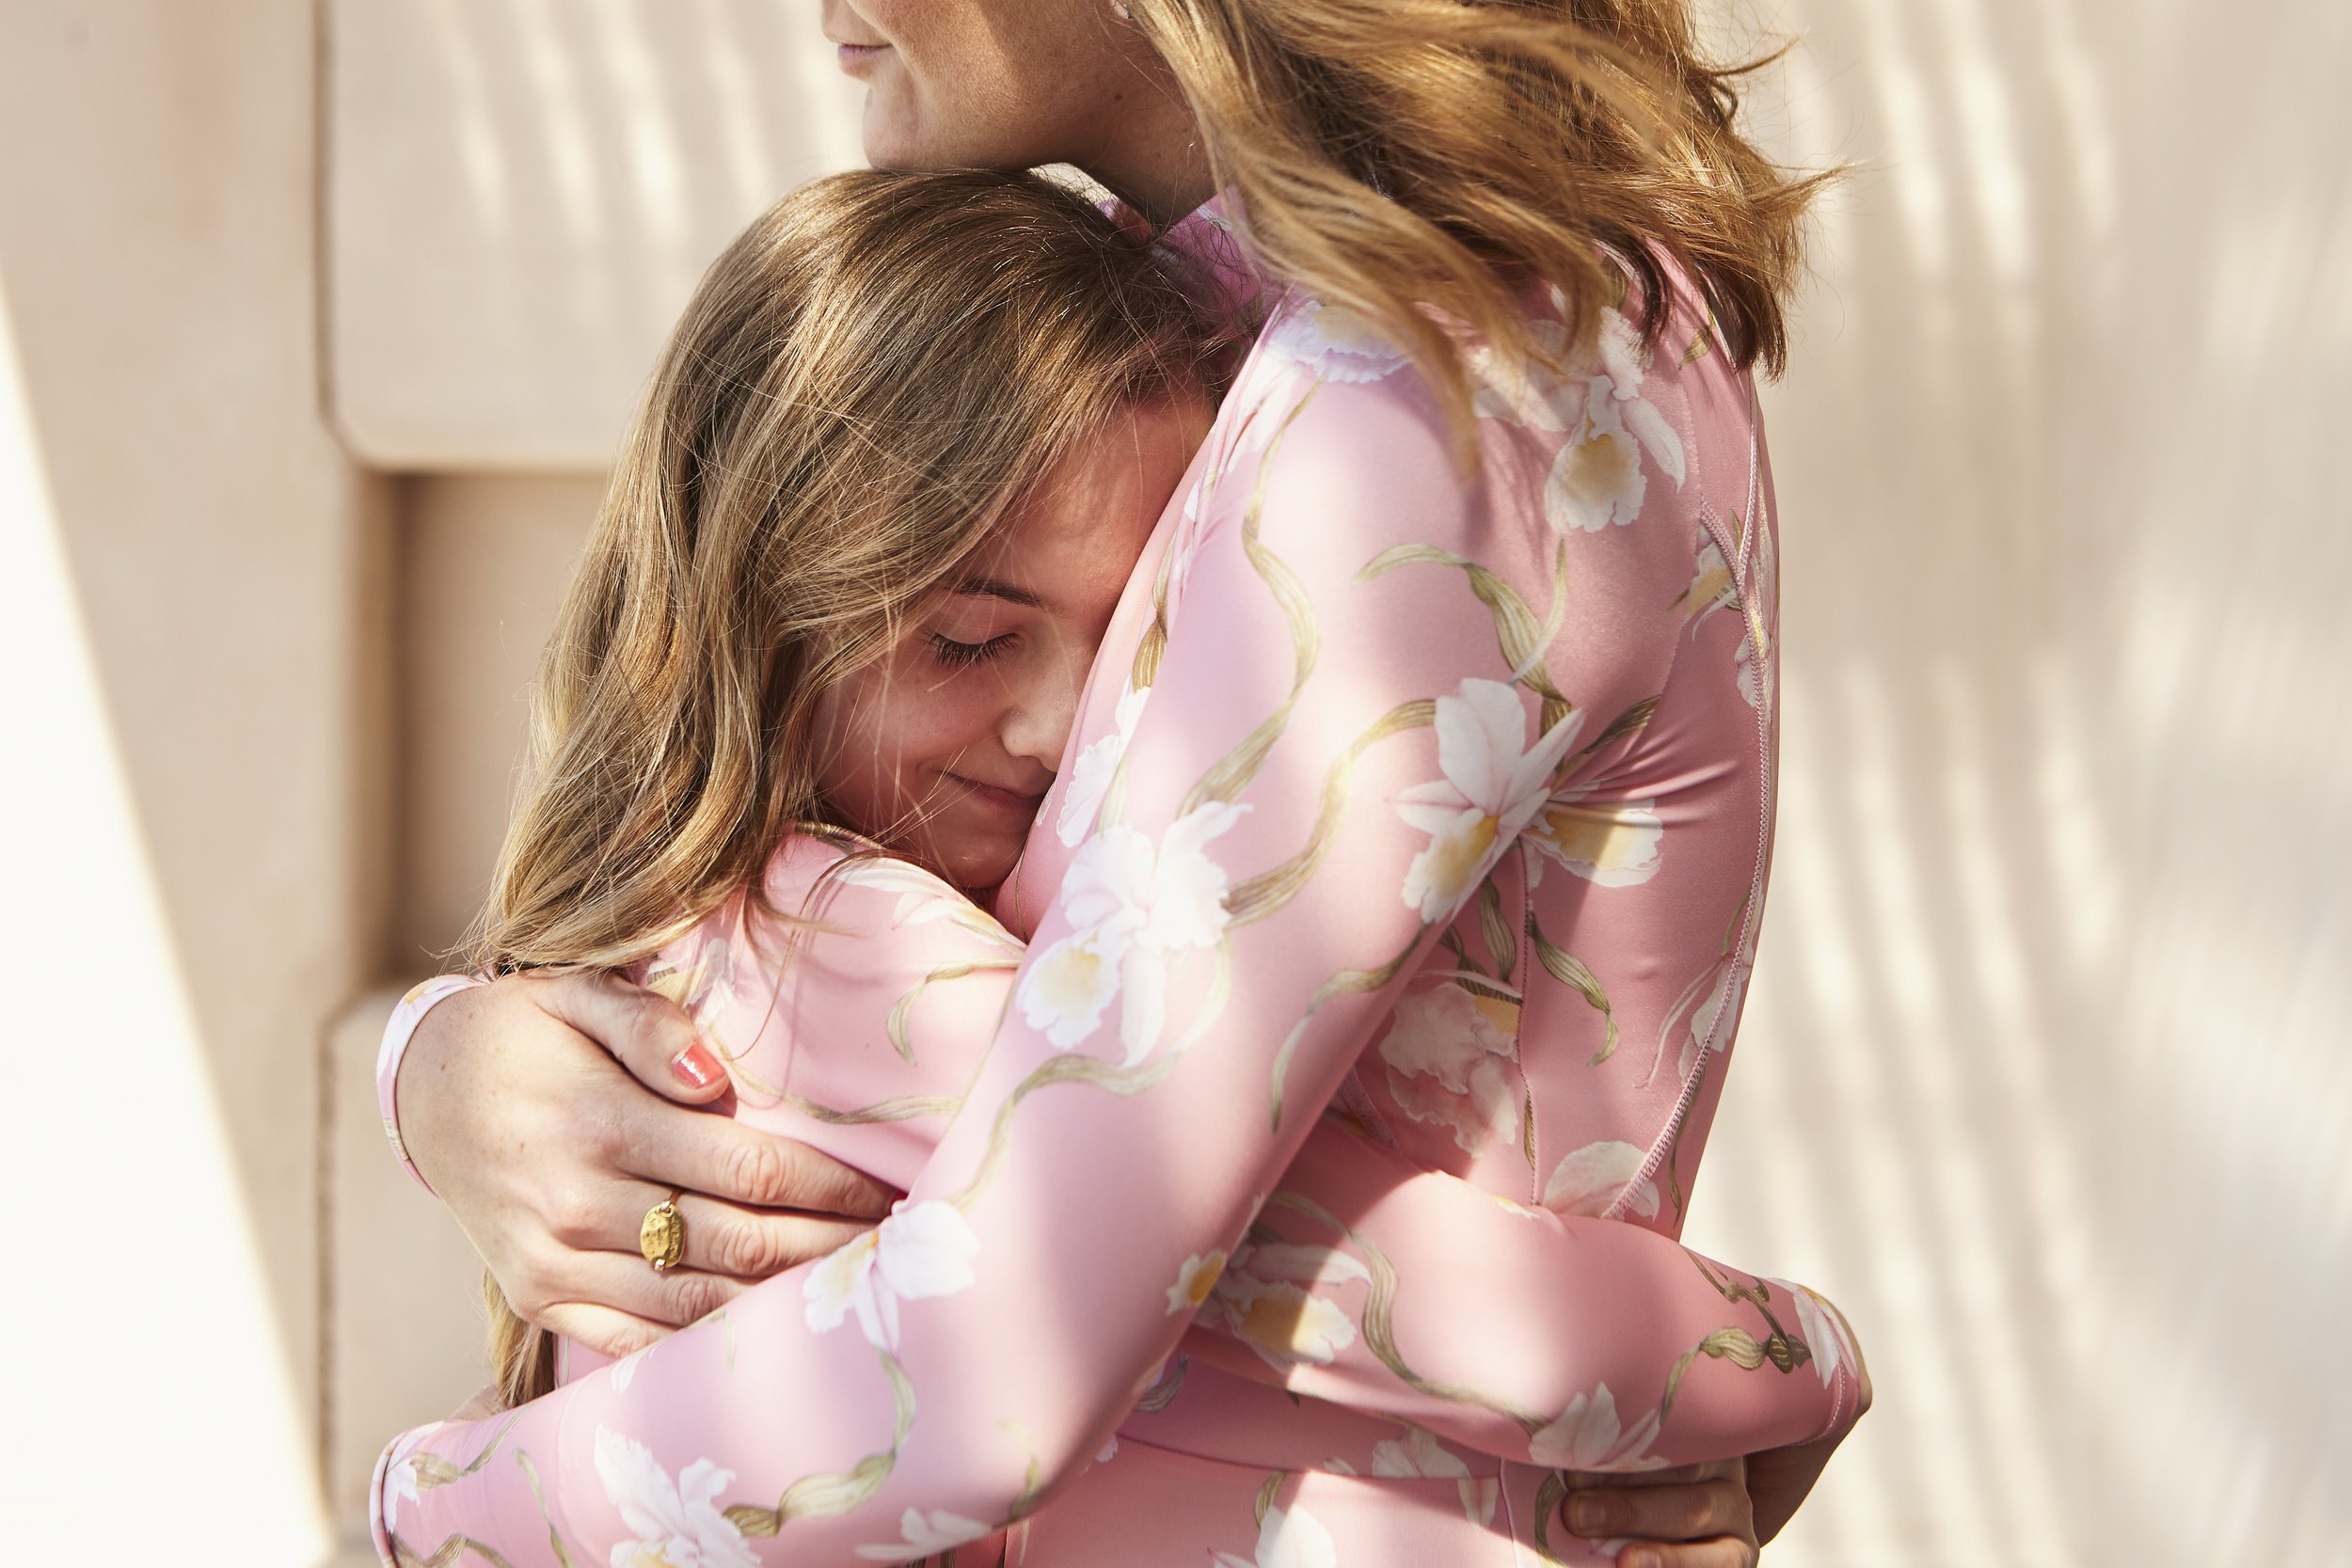 Heather wears the Original Sexie Rashie in Chic Botanical Pink, and Ava wears the matching Original Girls Rashie.